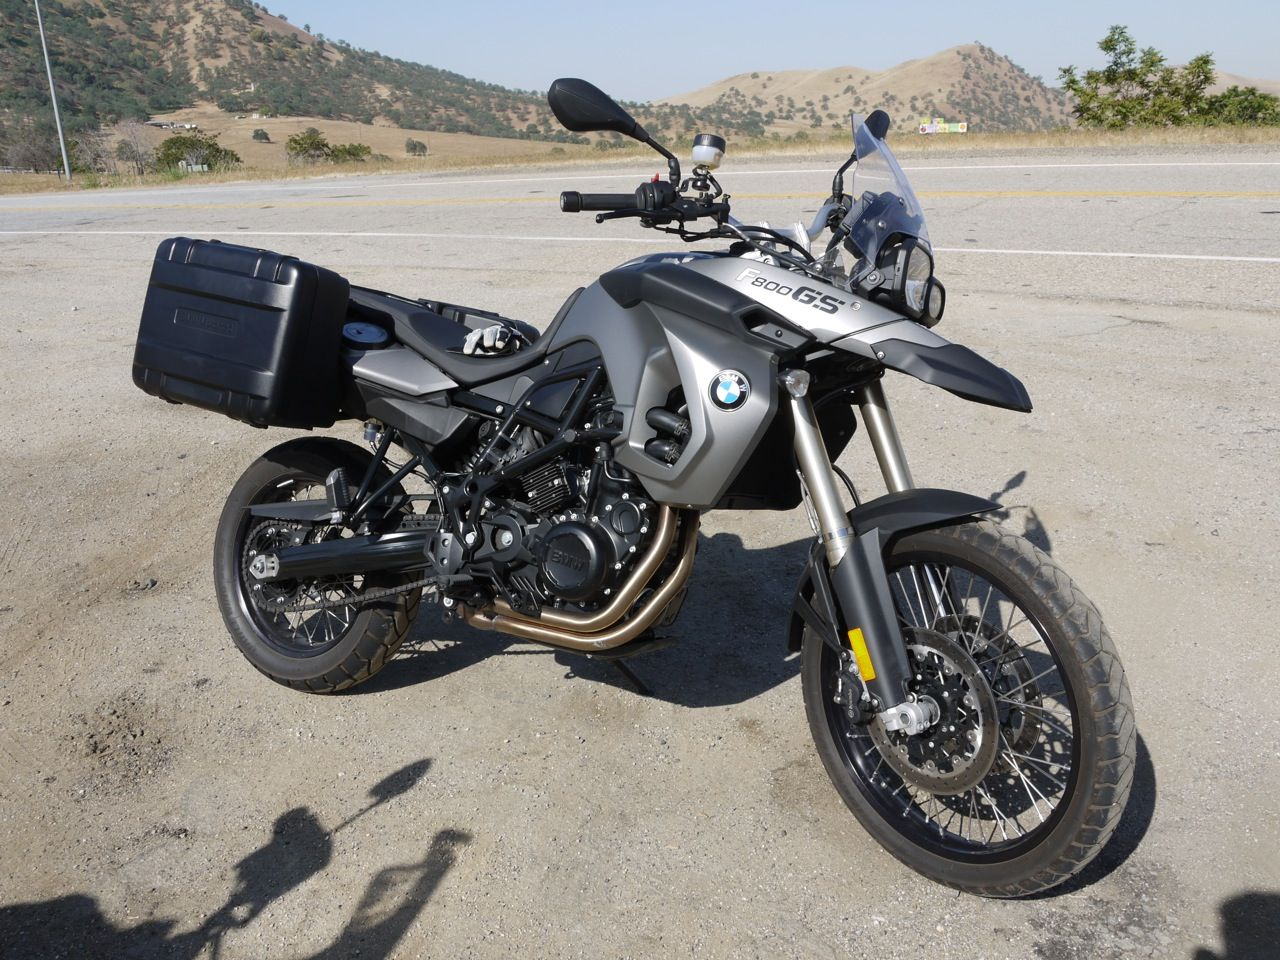 BMW F800 G5 | Thing I want to buy | Pinterest | BMW and Vehicle